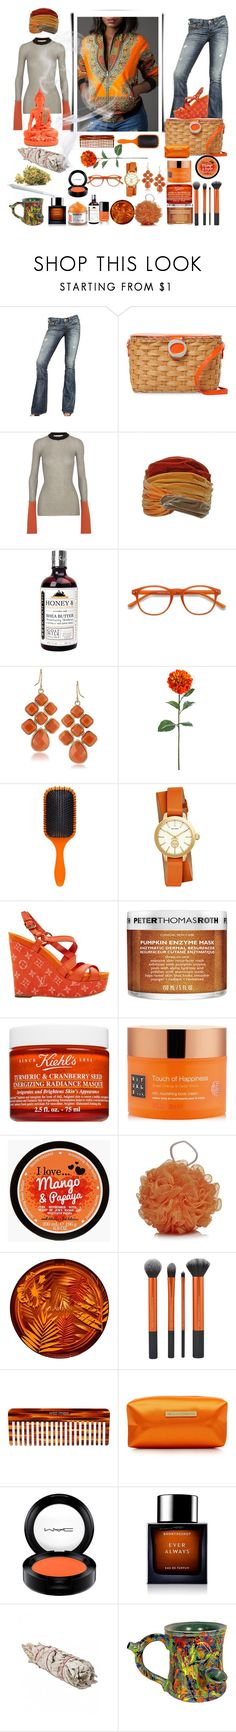 """Hybrid: Tangerine Power"" by ohitsjanedoe ❤ liked on Polyvore featuring True Religion, Frances Valentine, Marni, EyeBuyDirect.com, 1st & Gorgeous by Carolee, Denman, Tory Burch, Louis Vuitton, Peter Thomas Roth and Kiehl's"